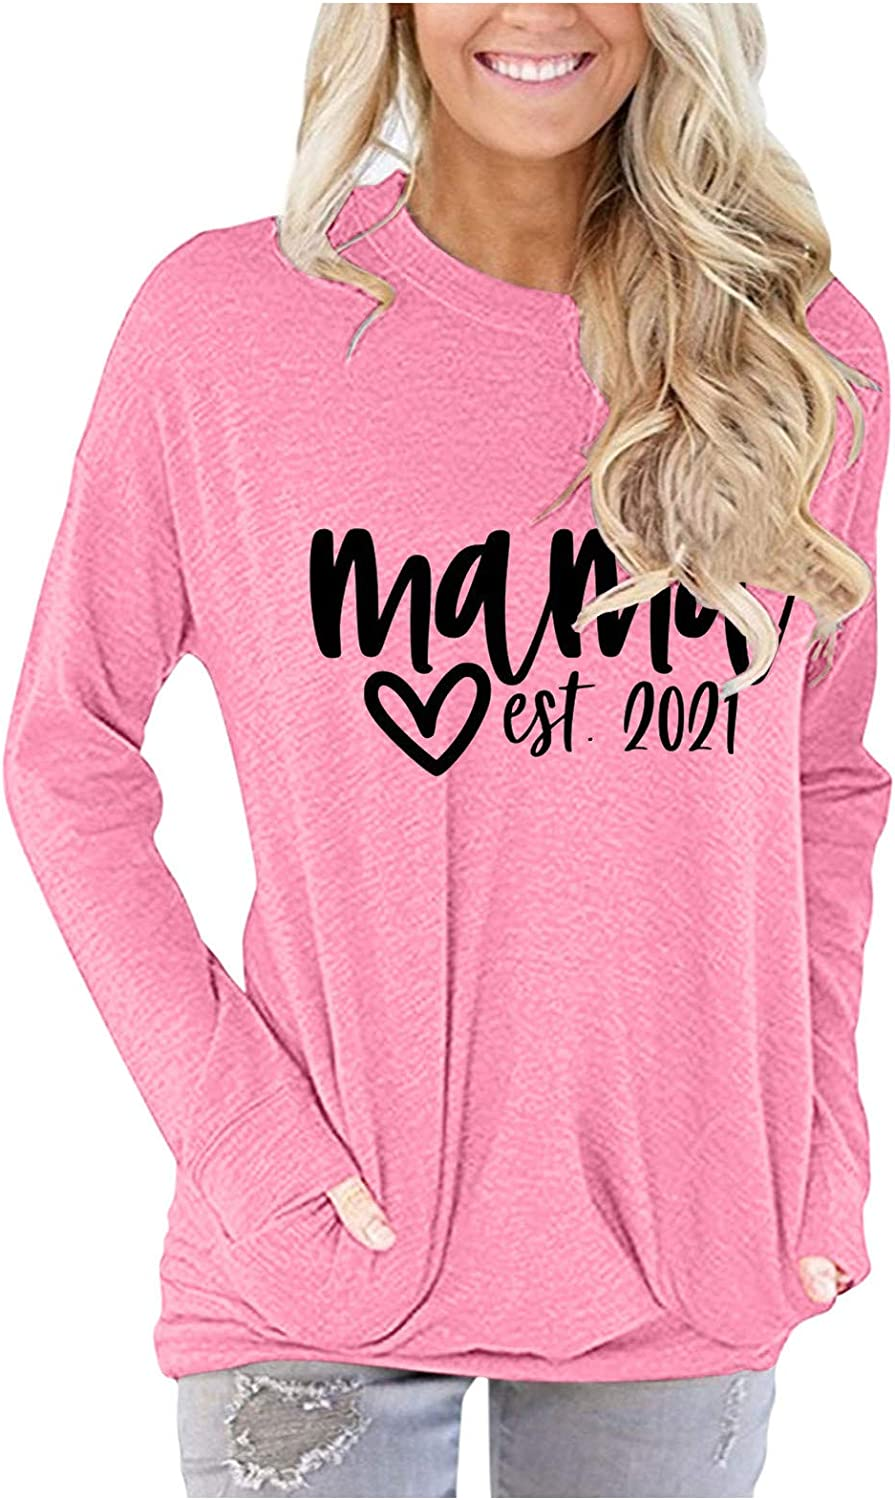 iQKA Women's Graphic Sweatshirt Crew Neck Long Sleeve Tops Casual Loose Lightweight Pullover Blouse with Pocket